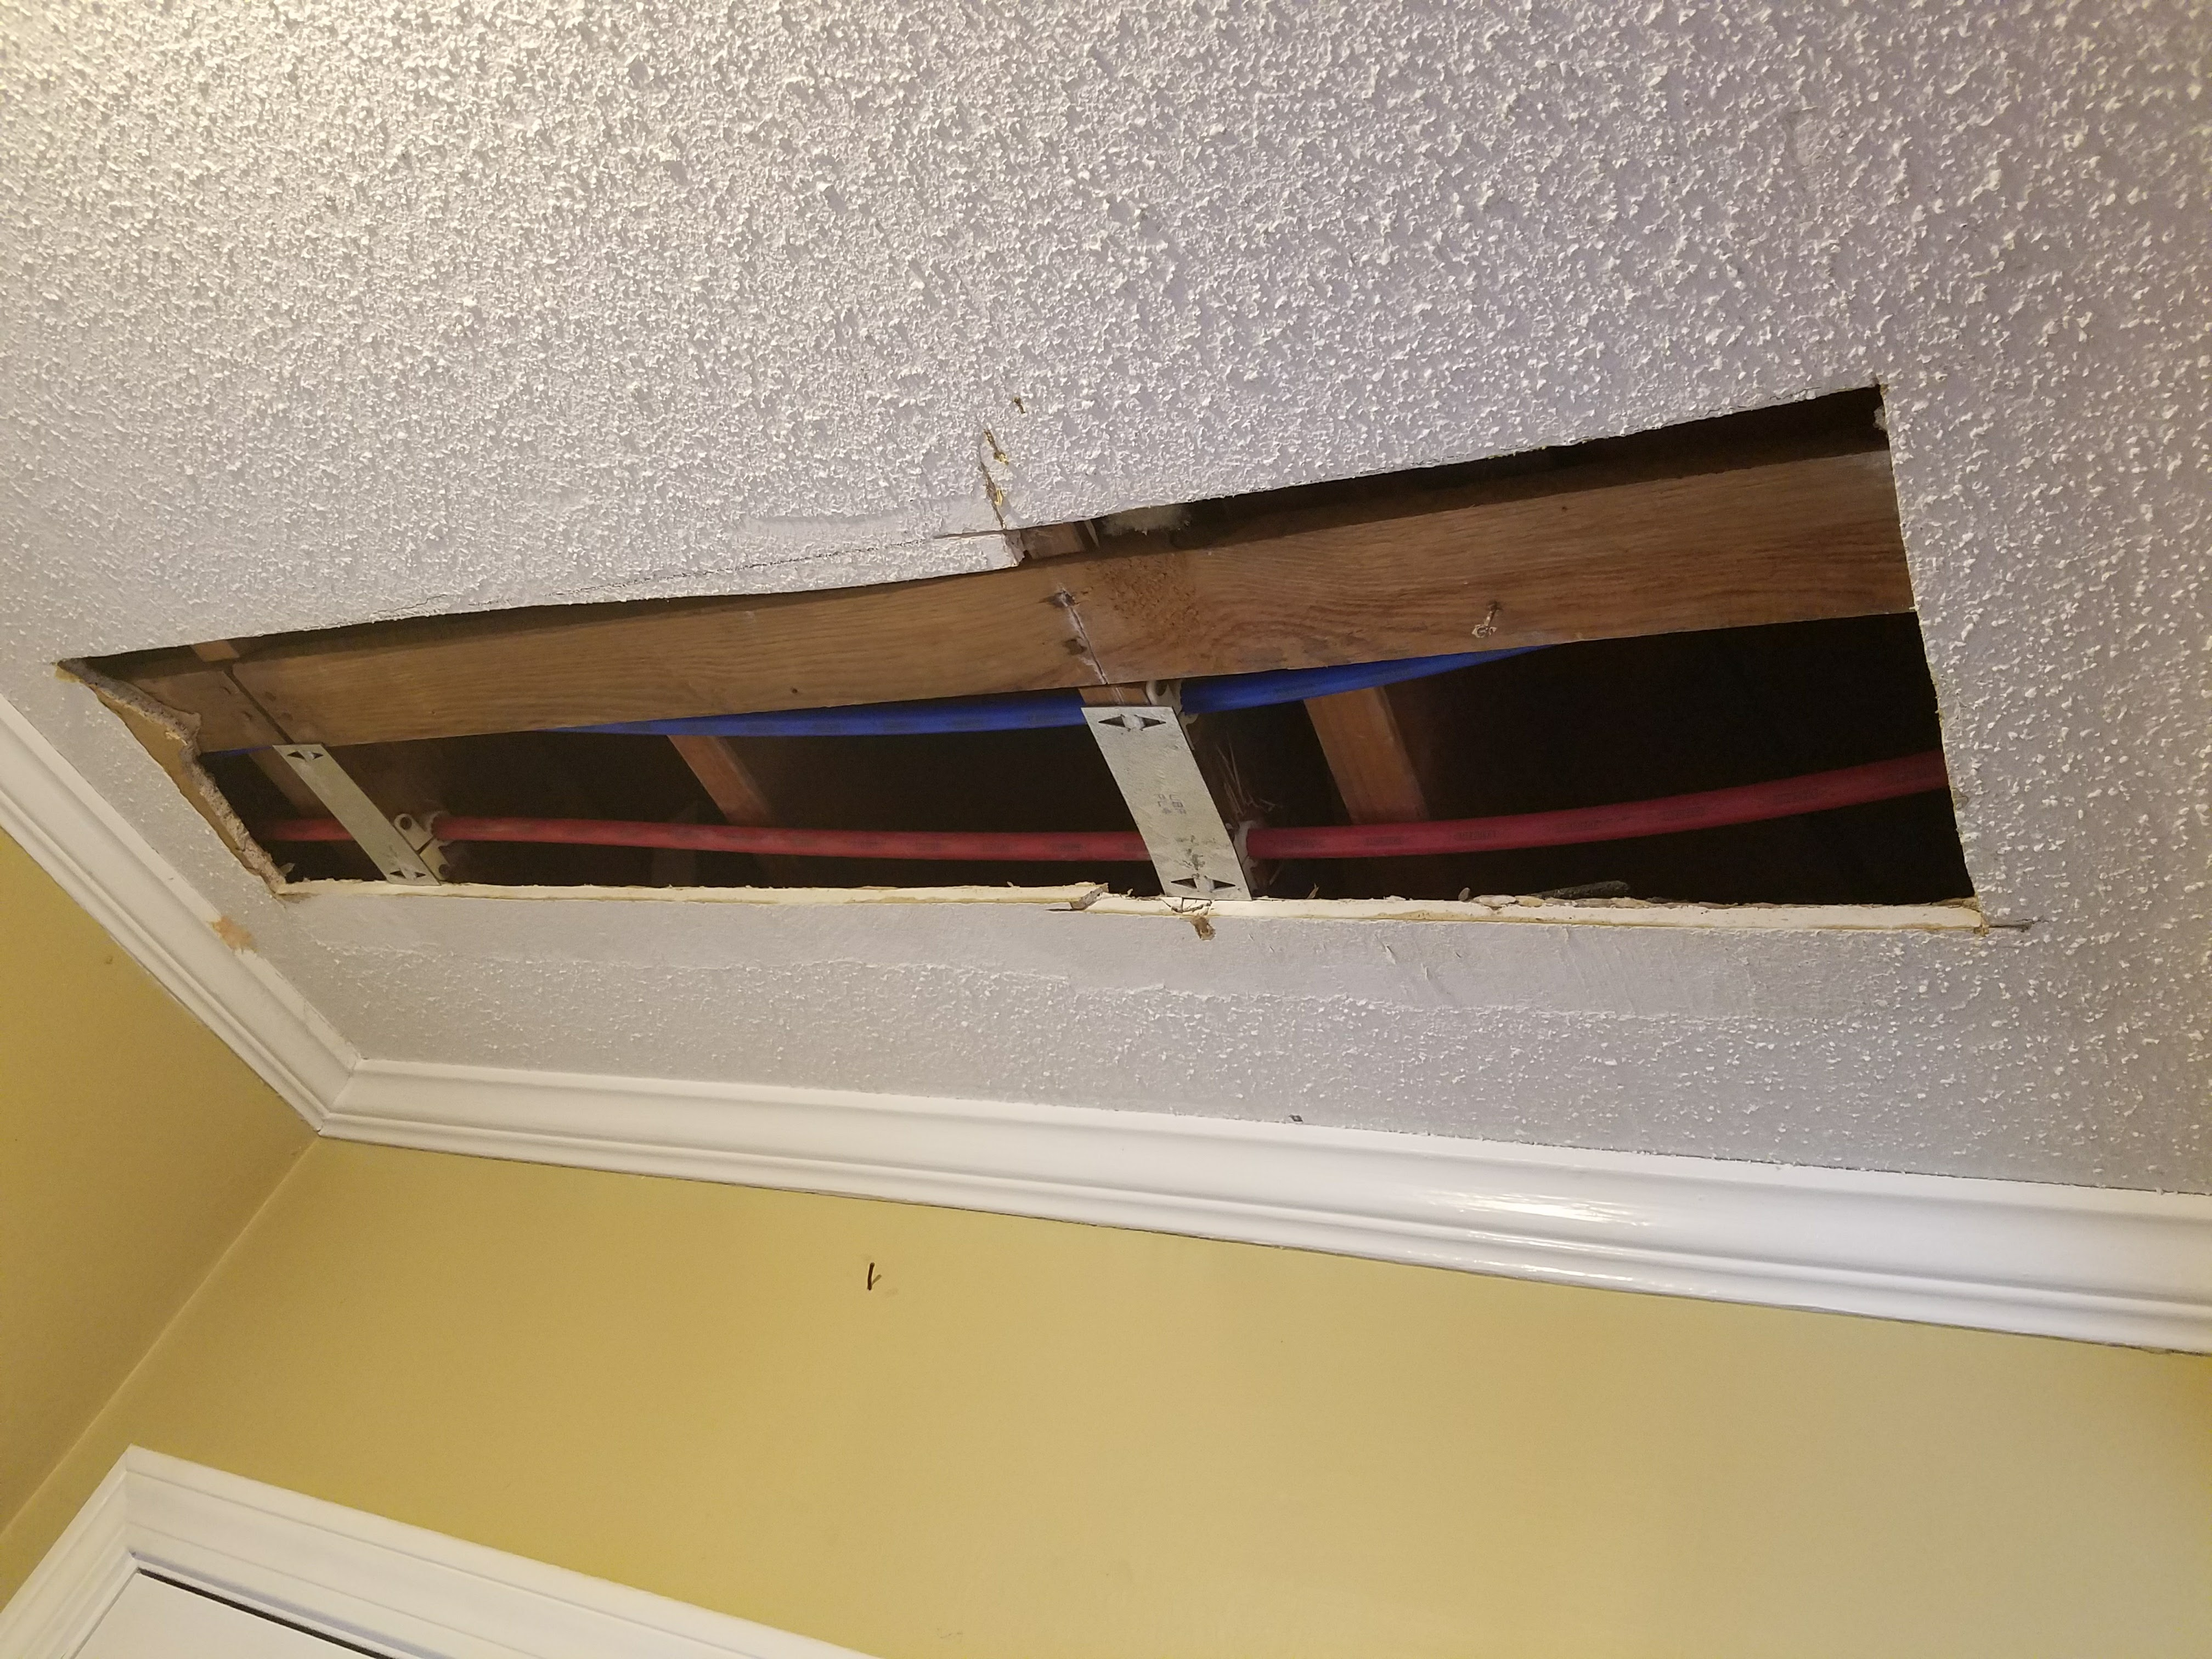 wilmington nc roman s ceiling sheetrock professional inc drywall contractors texture repair